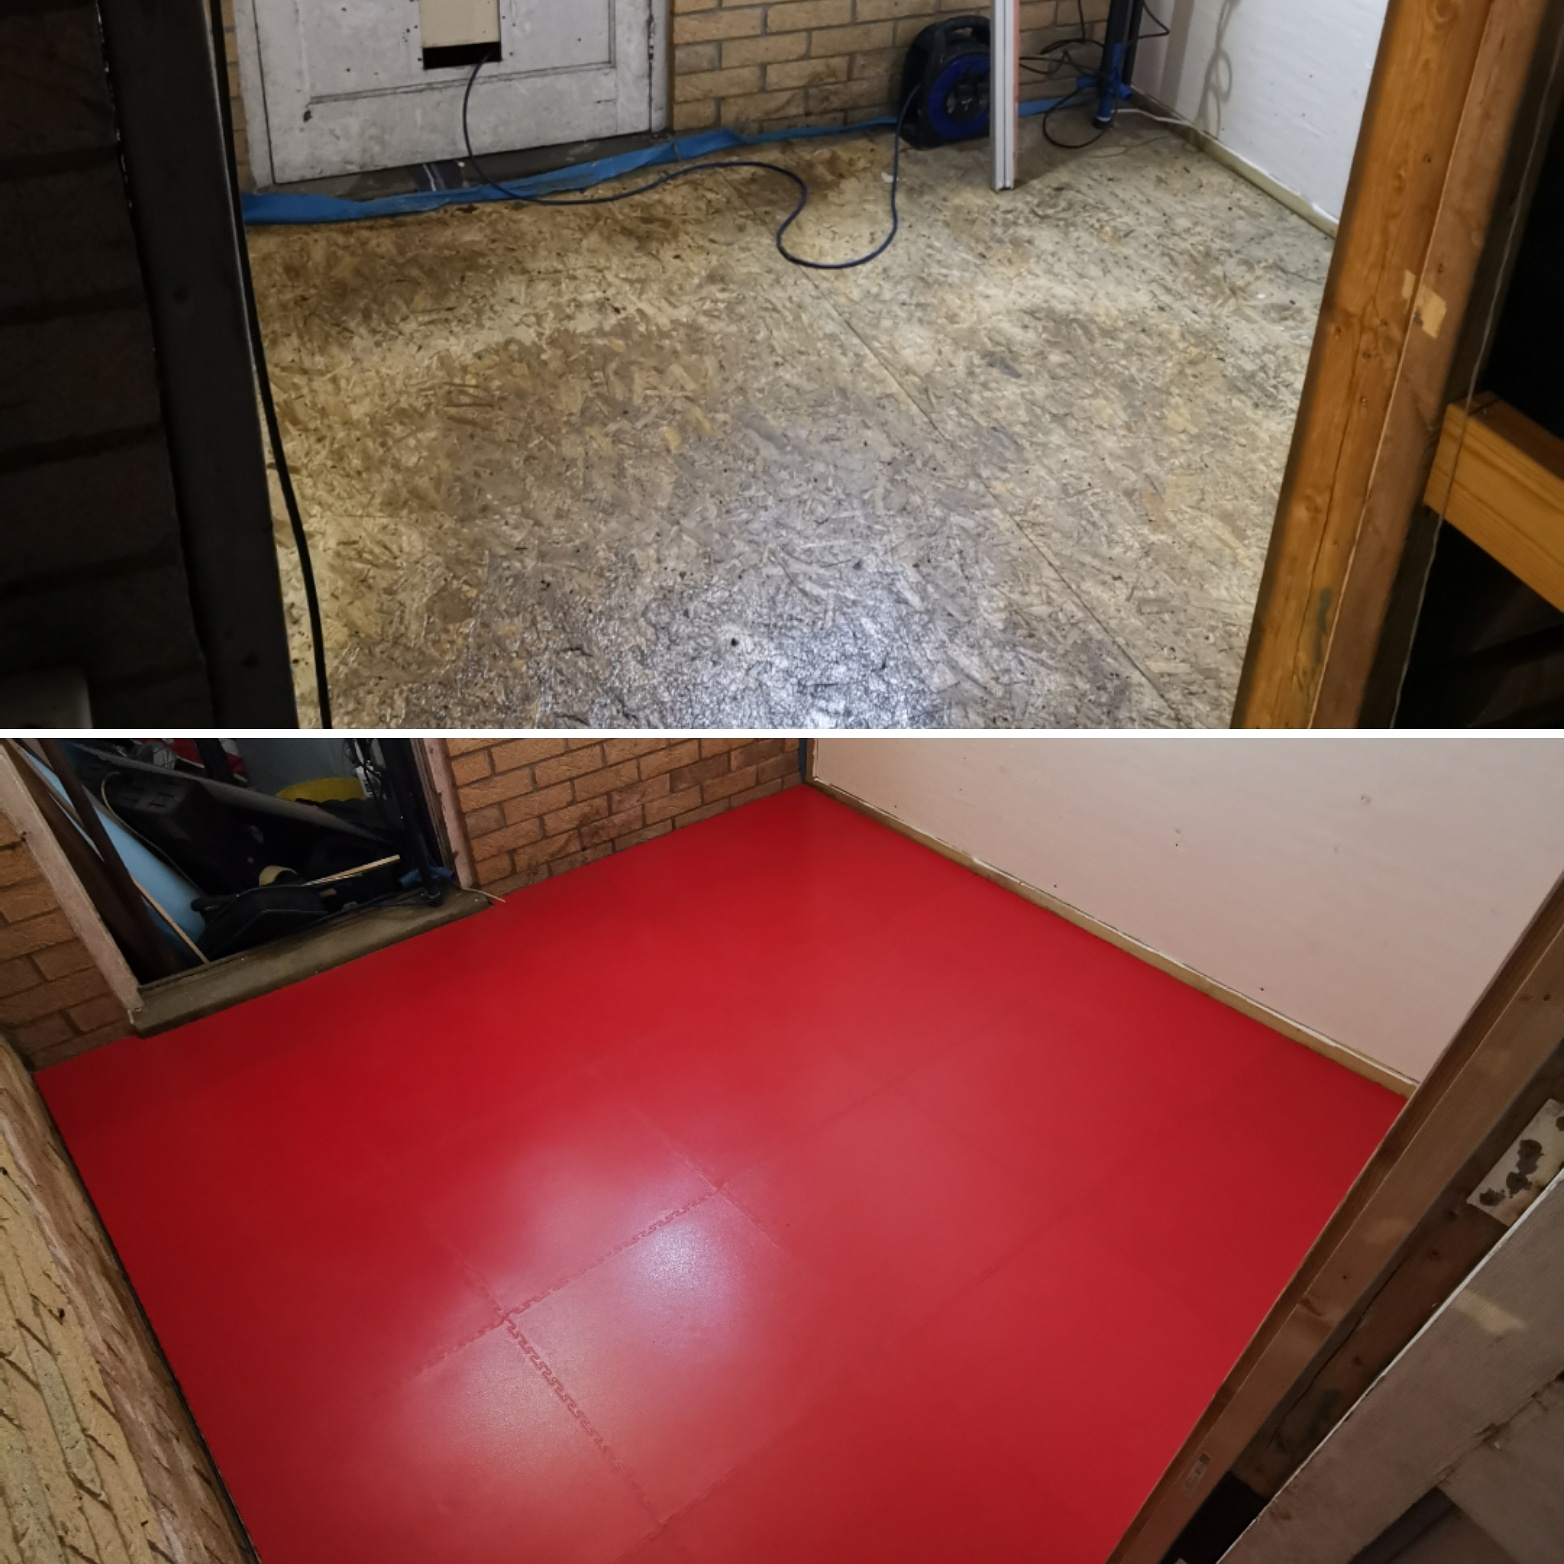 Another garage floor transformed last weekend. Our customer @fto_pete provided the before and after pictures and intends to dismantle a classic car engine on a dolly here. The floor tiles will make it a much more pleasant environment to work in.